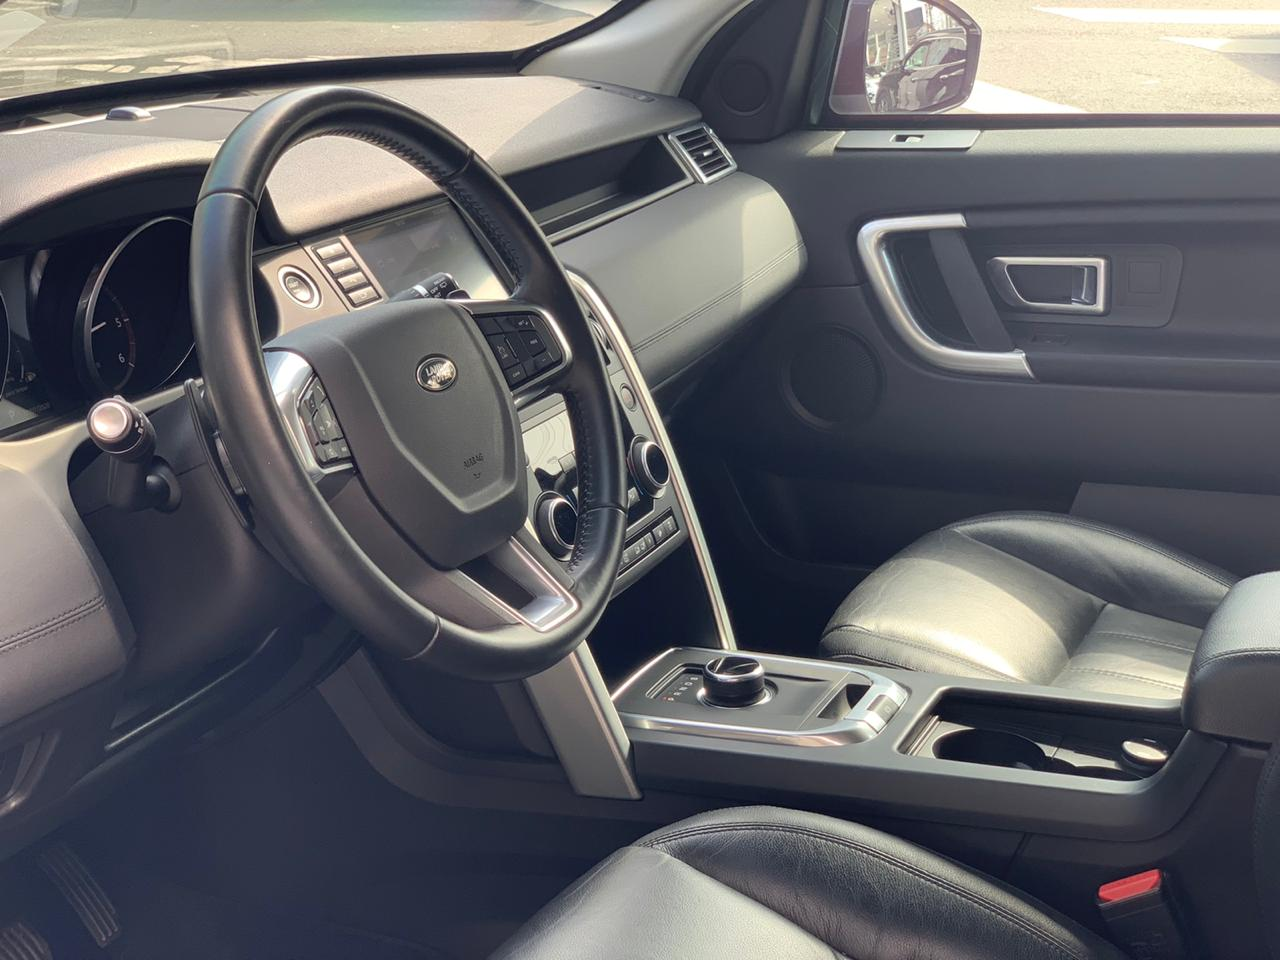 Land Rover Discovery Sport SE 2.0 4x4 Diesel Aut.